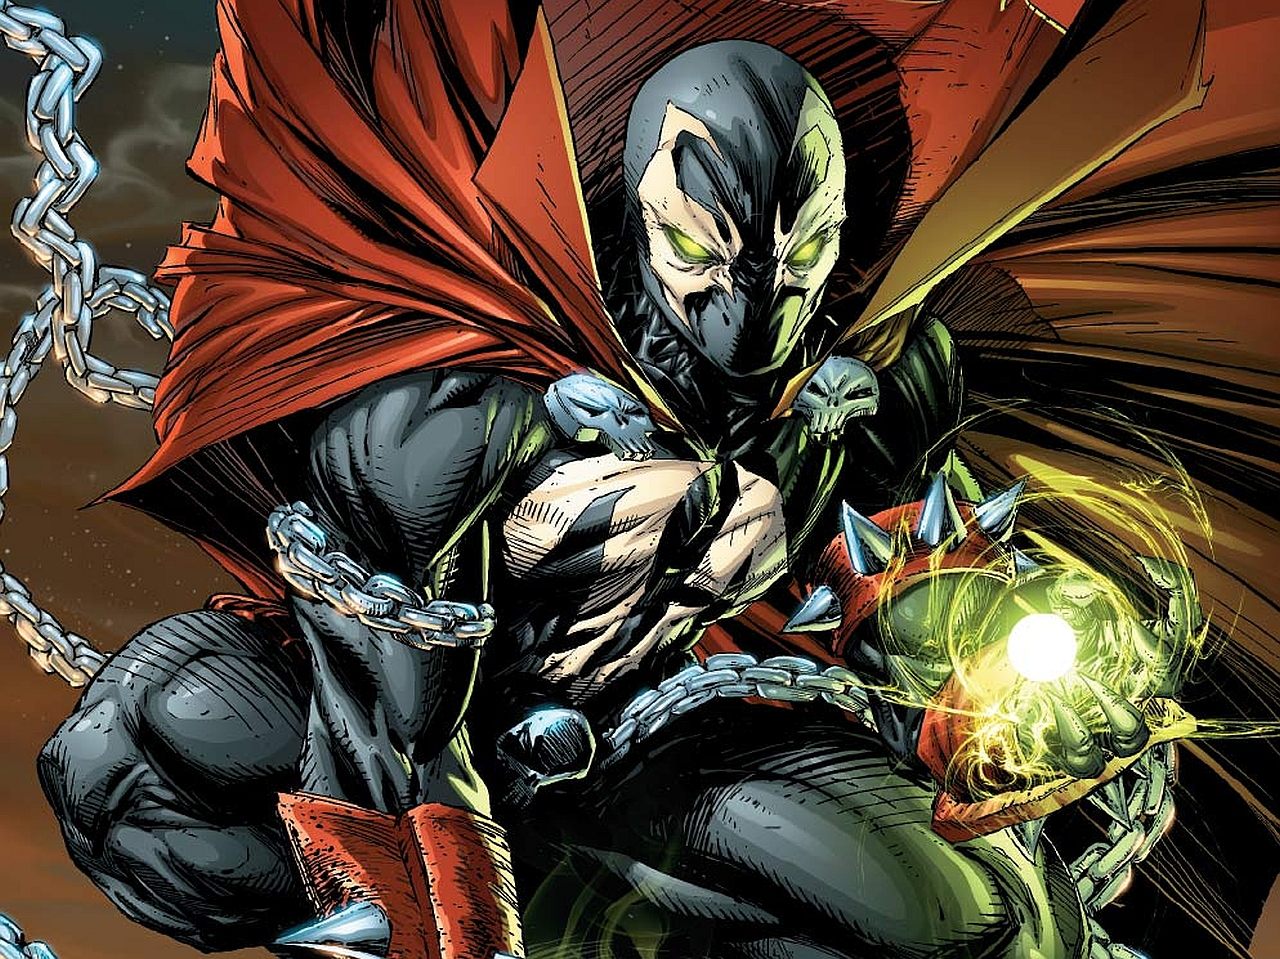 Spawn Computer Wallpapers, Desktop Backgrounds | 1280x959 | ID:443092